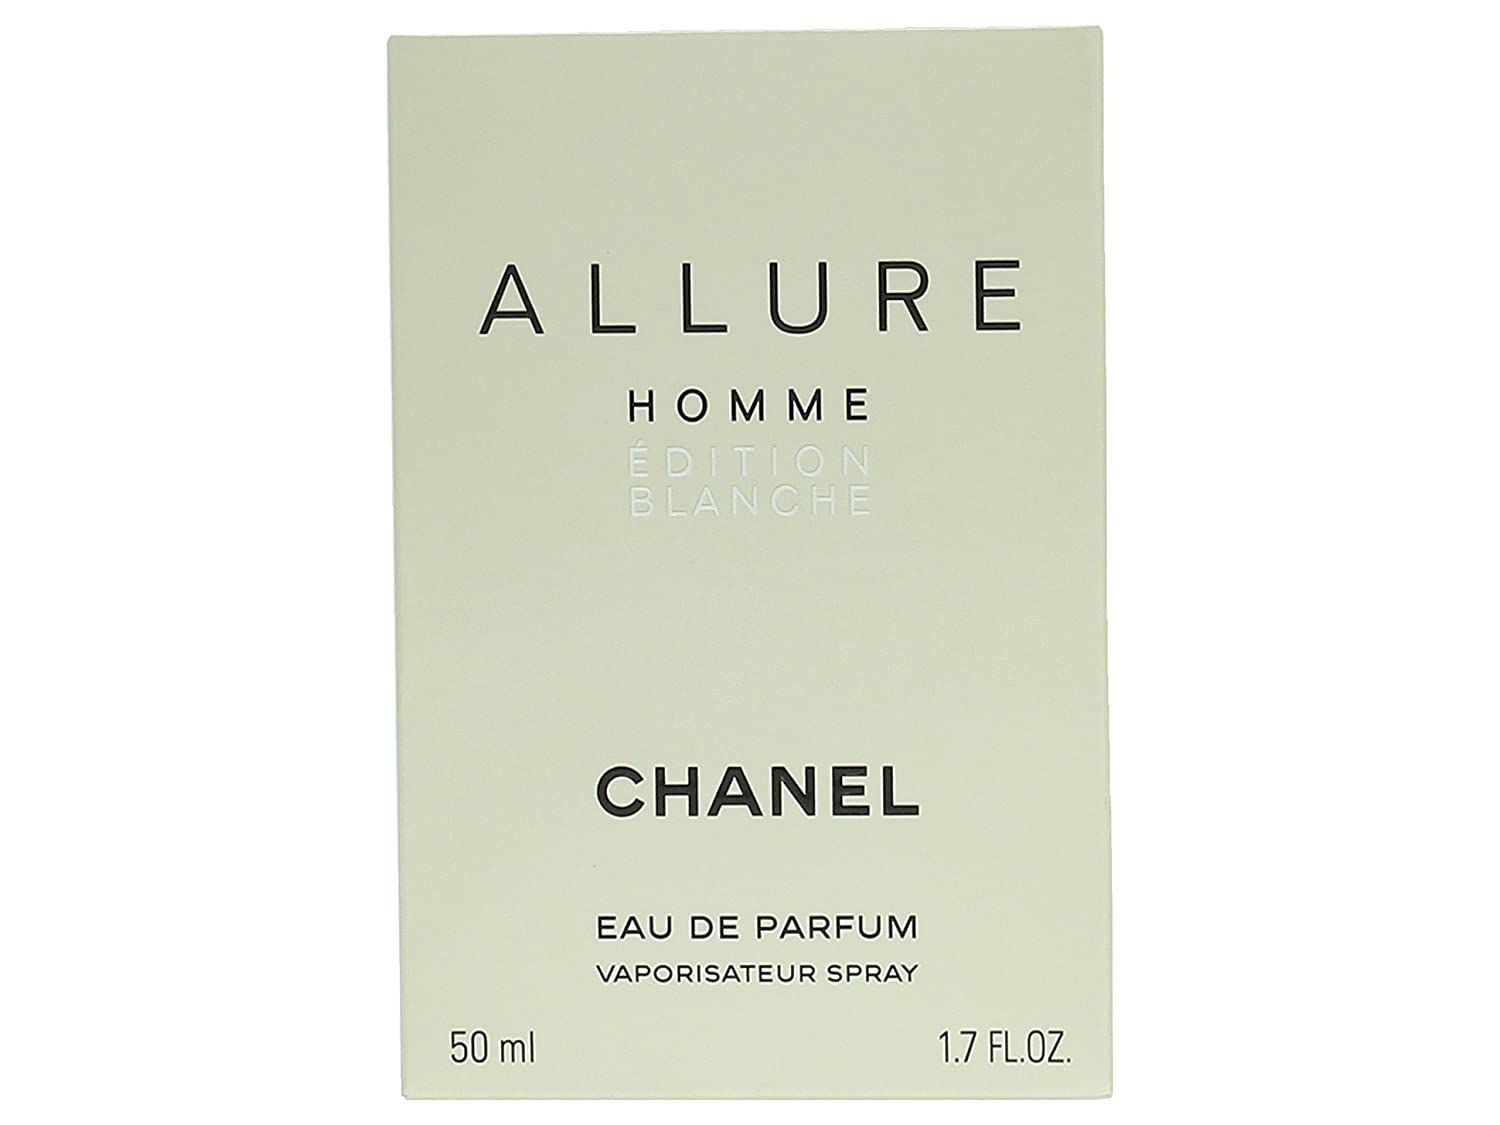 Chanel - Allure homme blanche Eau De Parfum 50 ml vapo: Amazon.es: Belleza